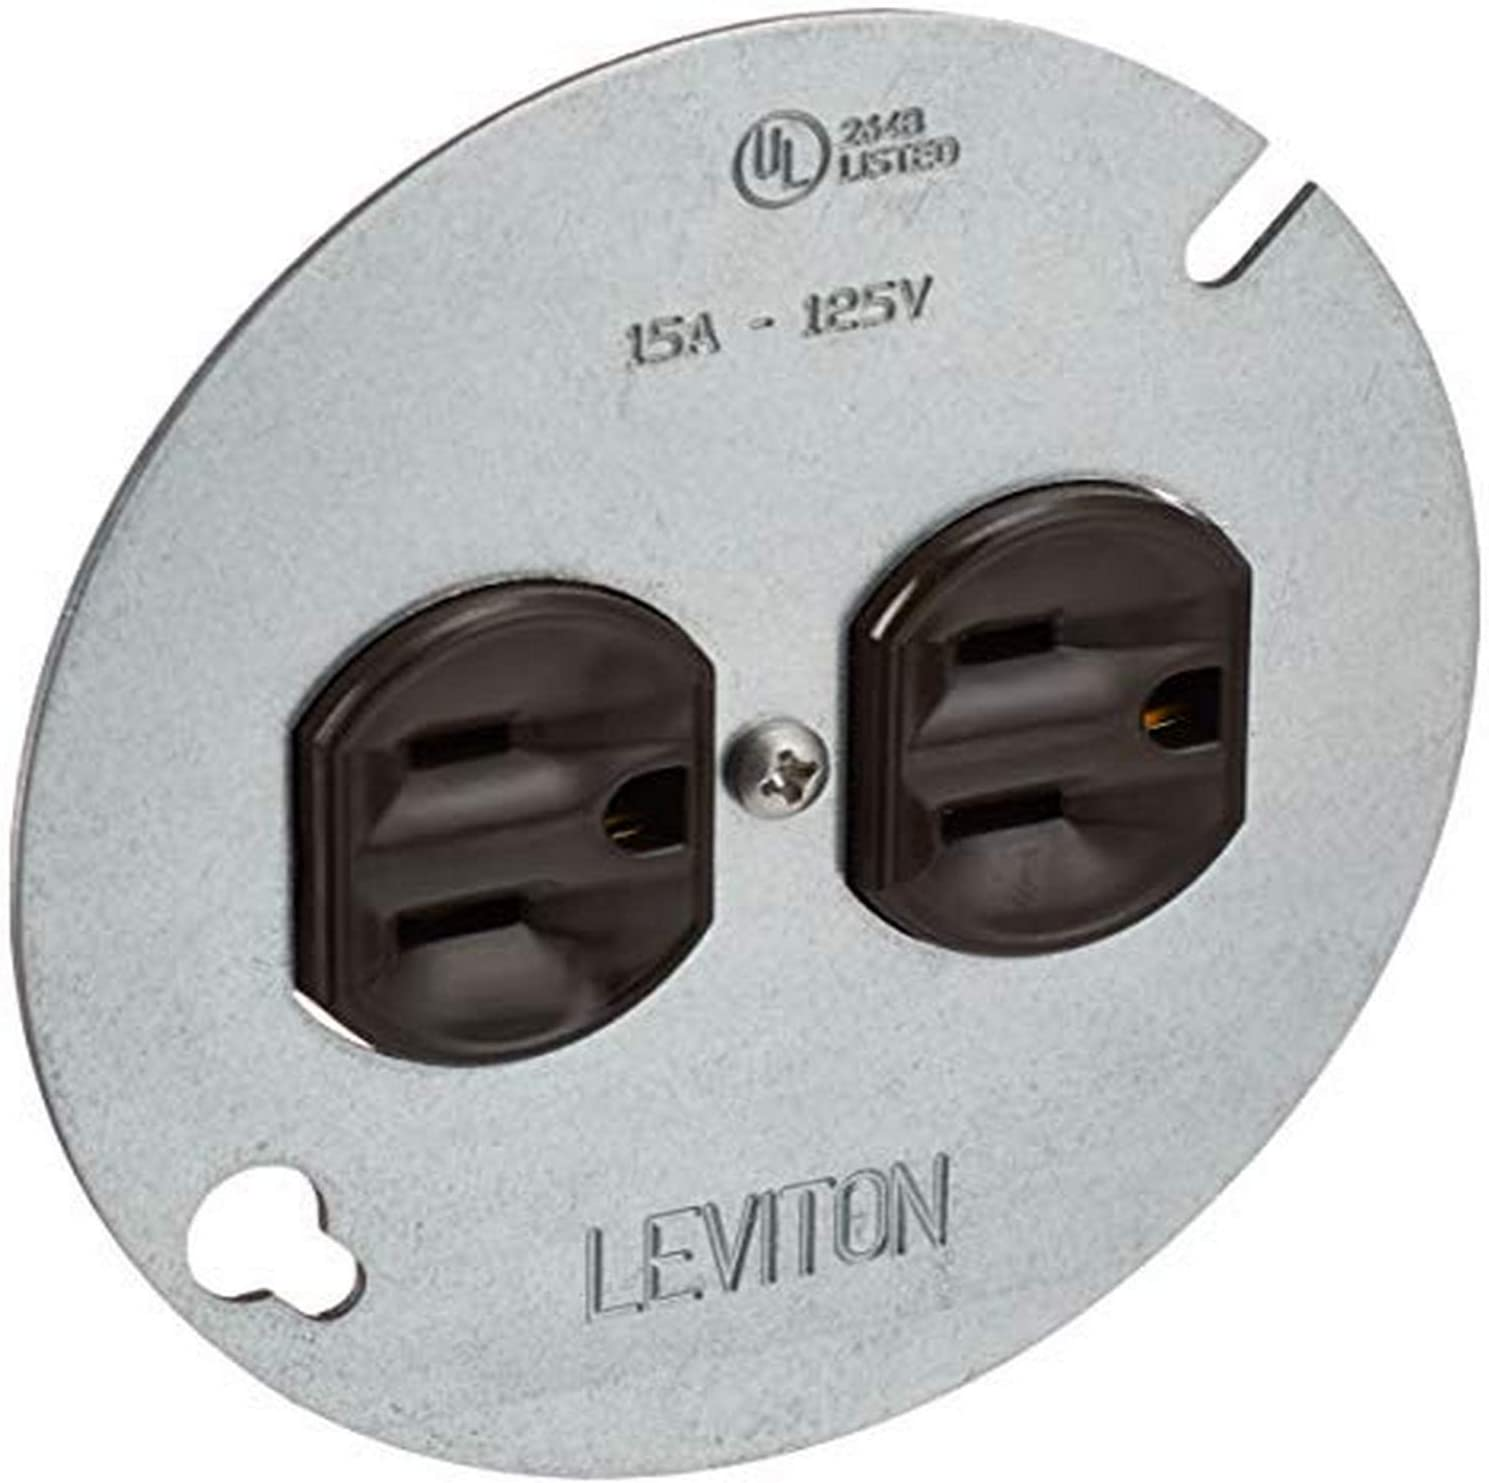 "Leviton 1228 15 Amp 125 Volt, Duplex Receptacle, with 4"" Metal Cover, Residential Grade, Grounding, Brown - Electric Plugs -"